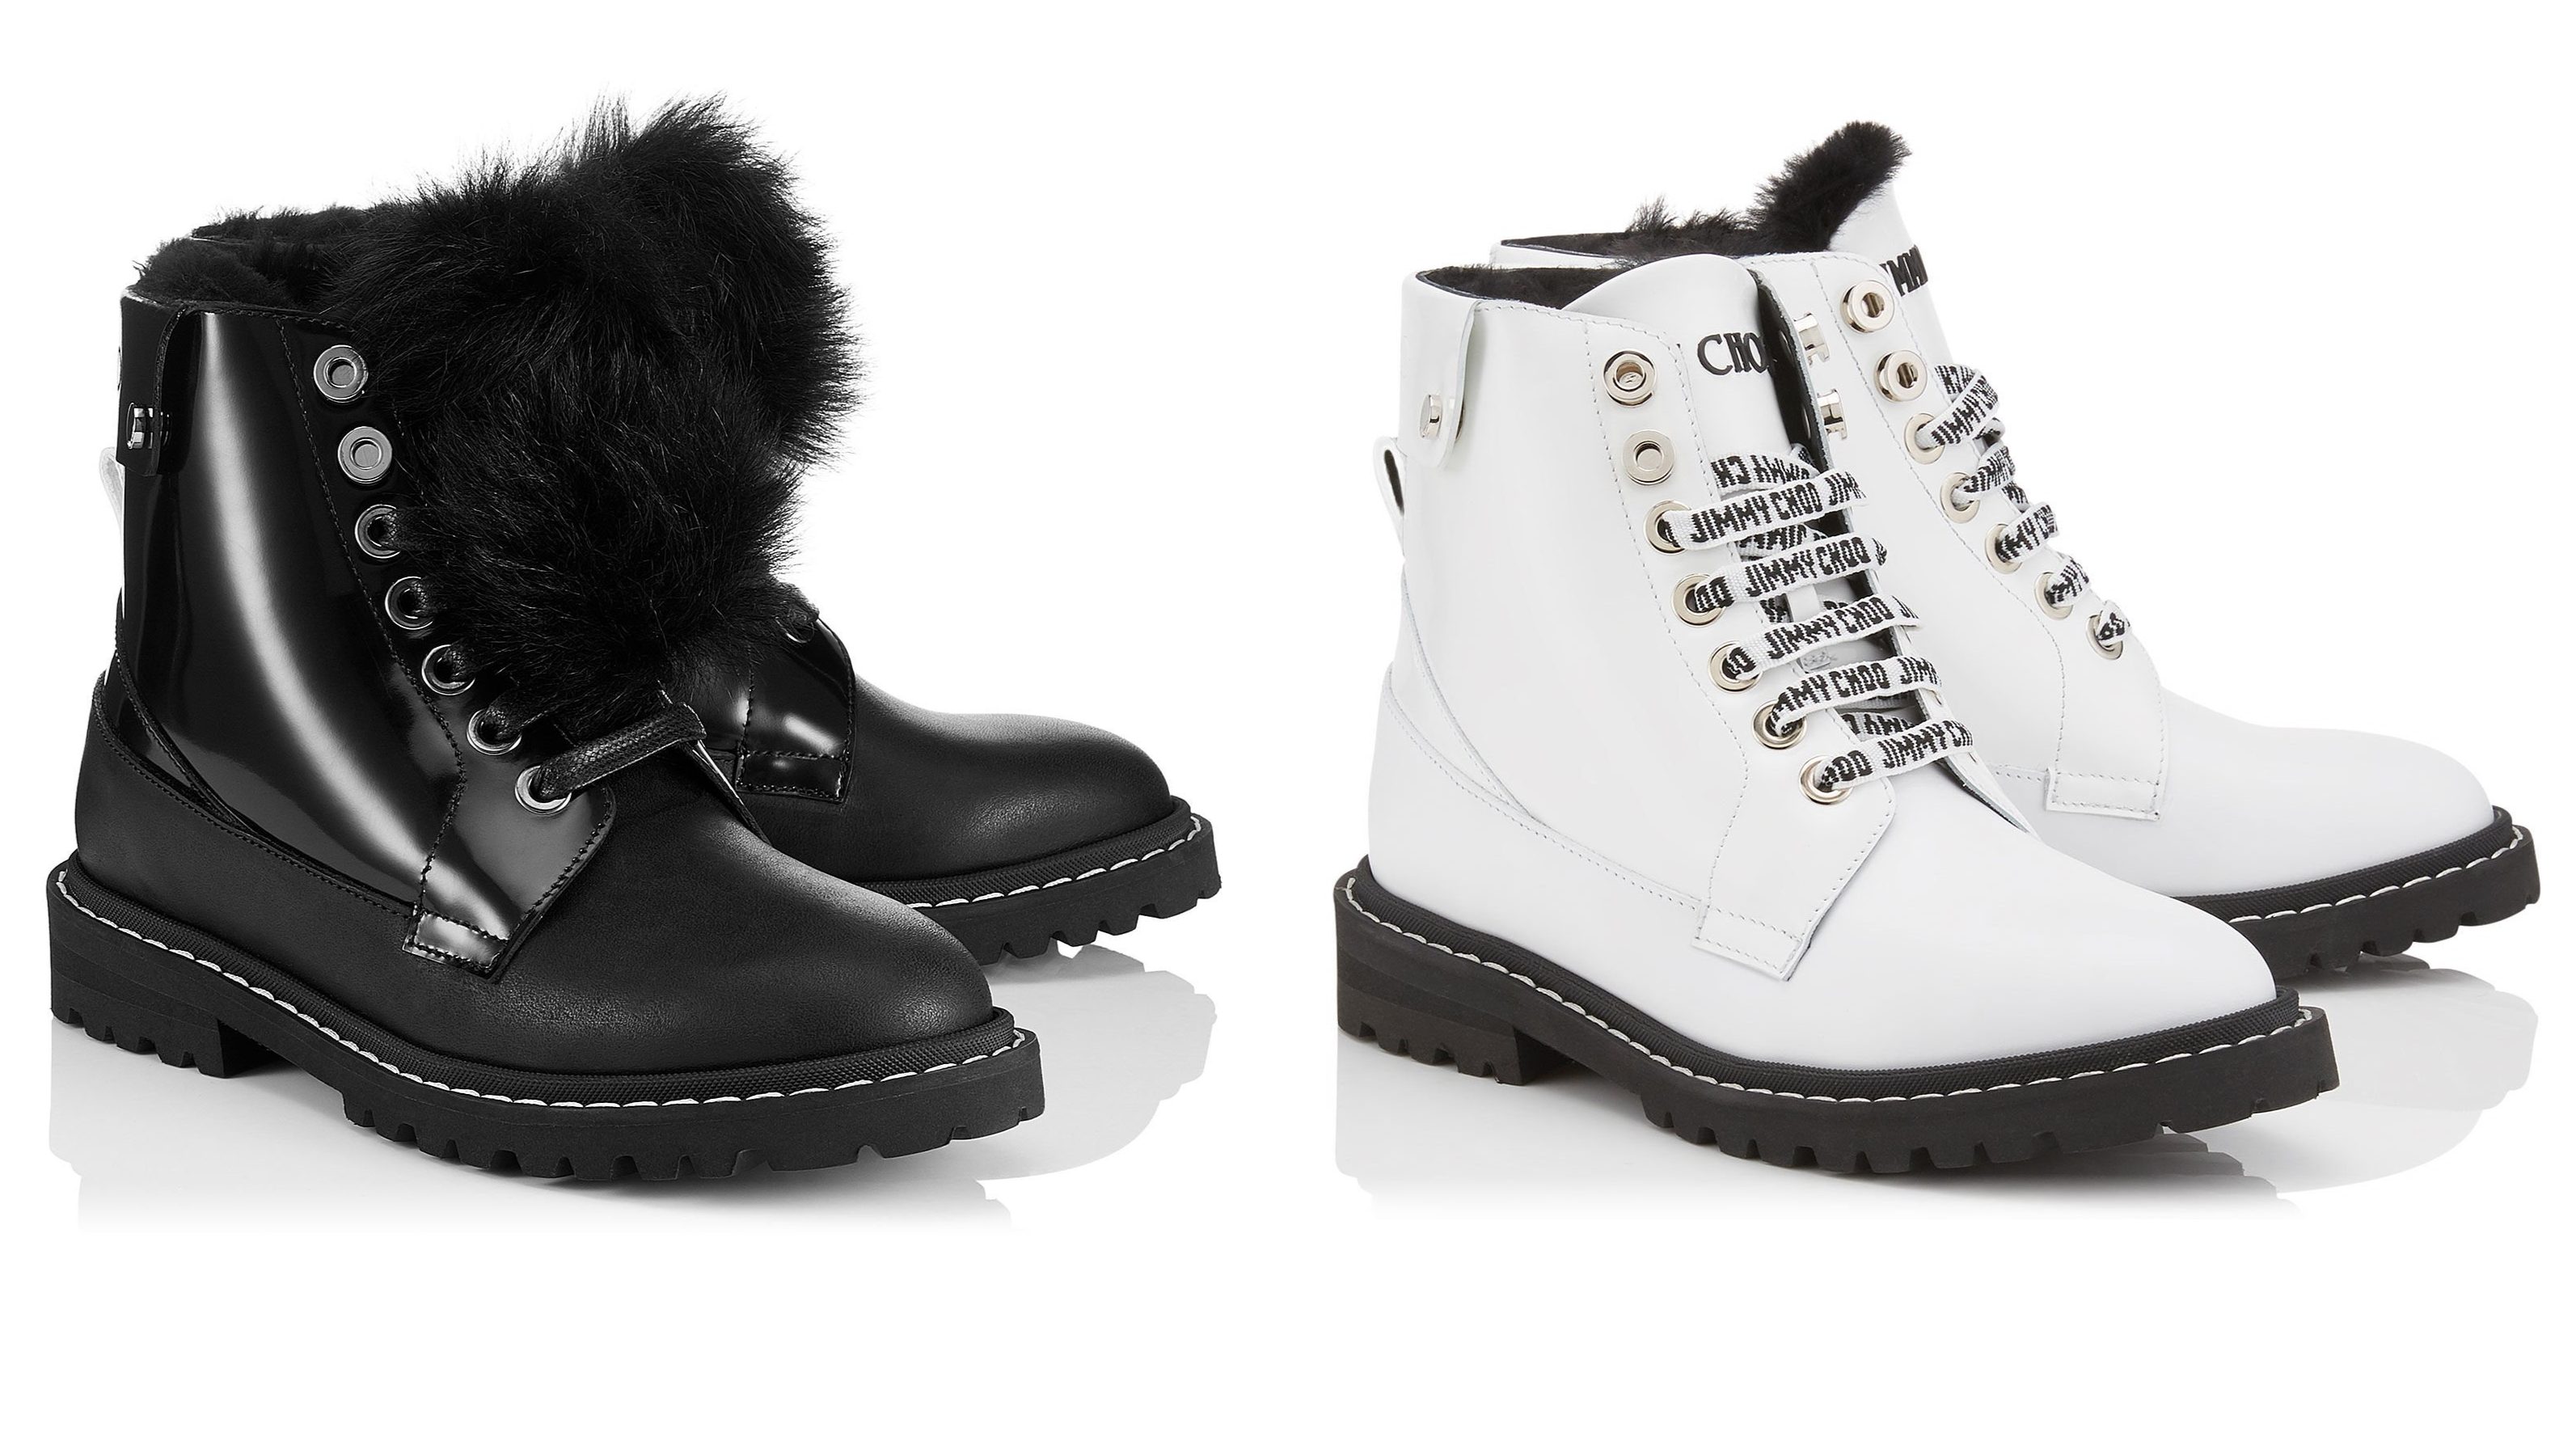 Jimmy Choo Launches Heated Boots To